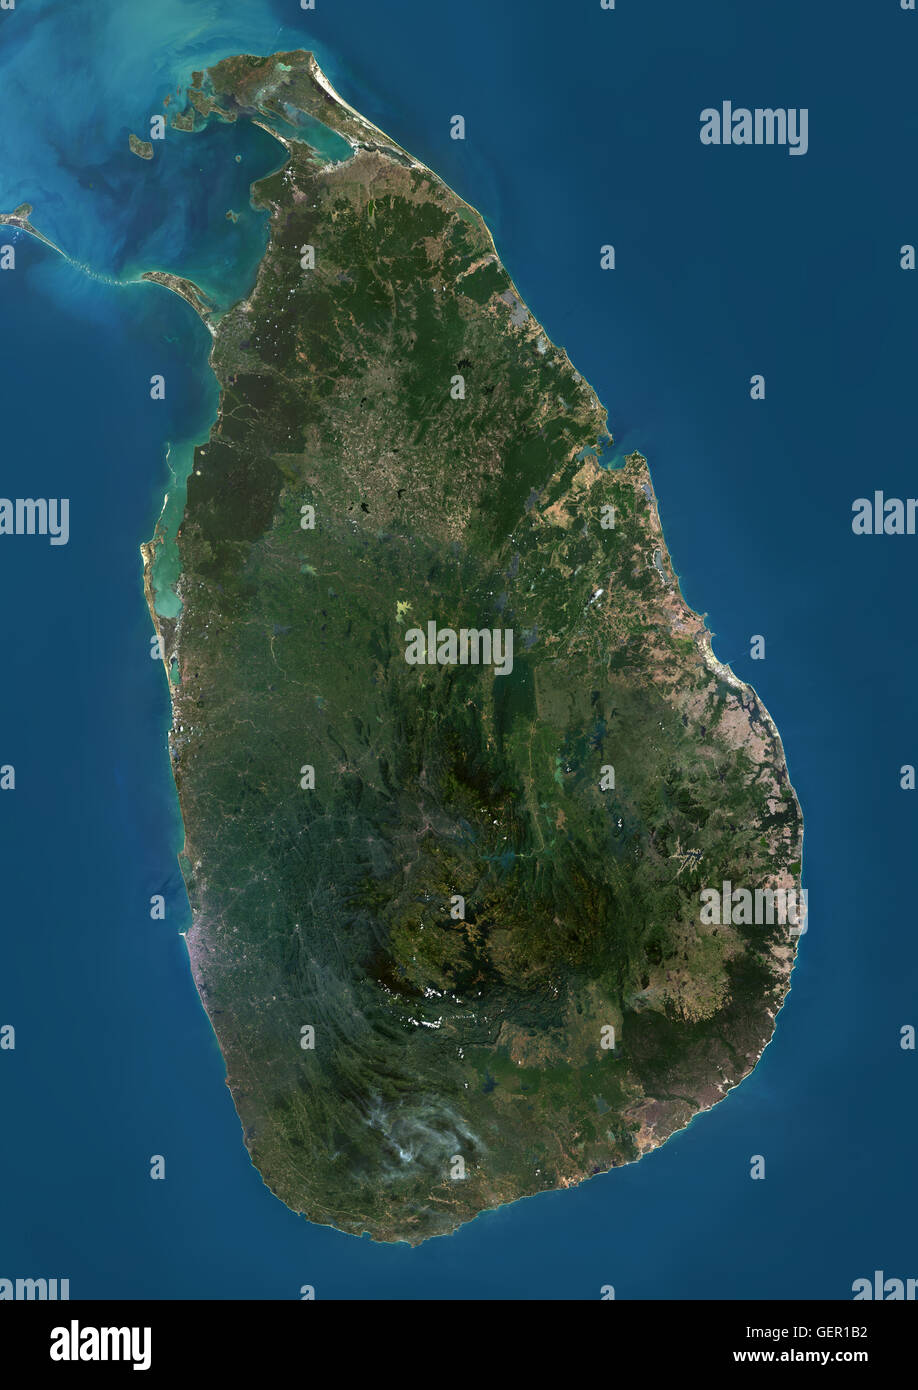 Satellite view of Sri Lanka This image was compiled from data